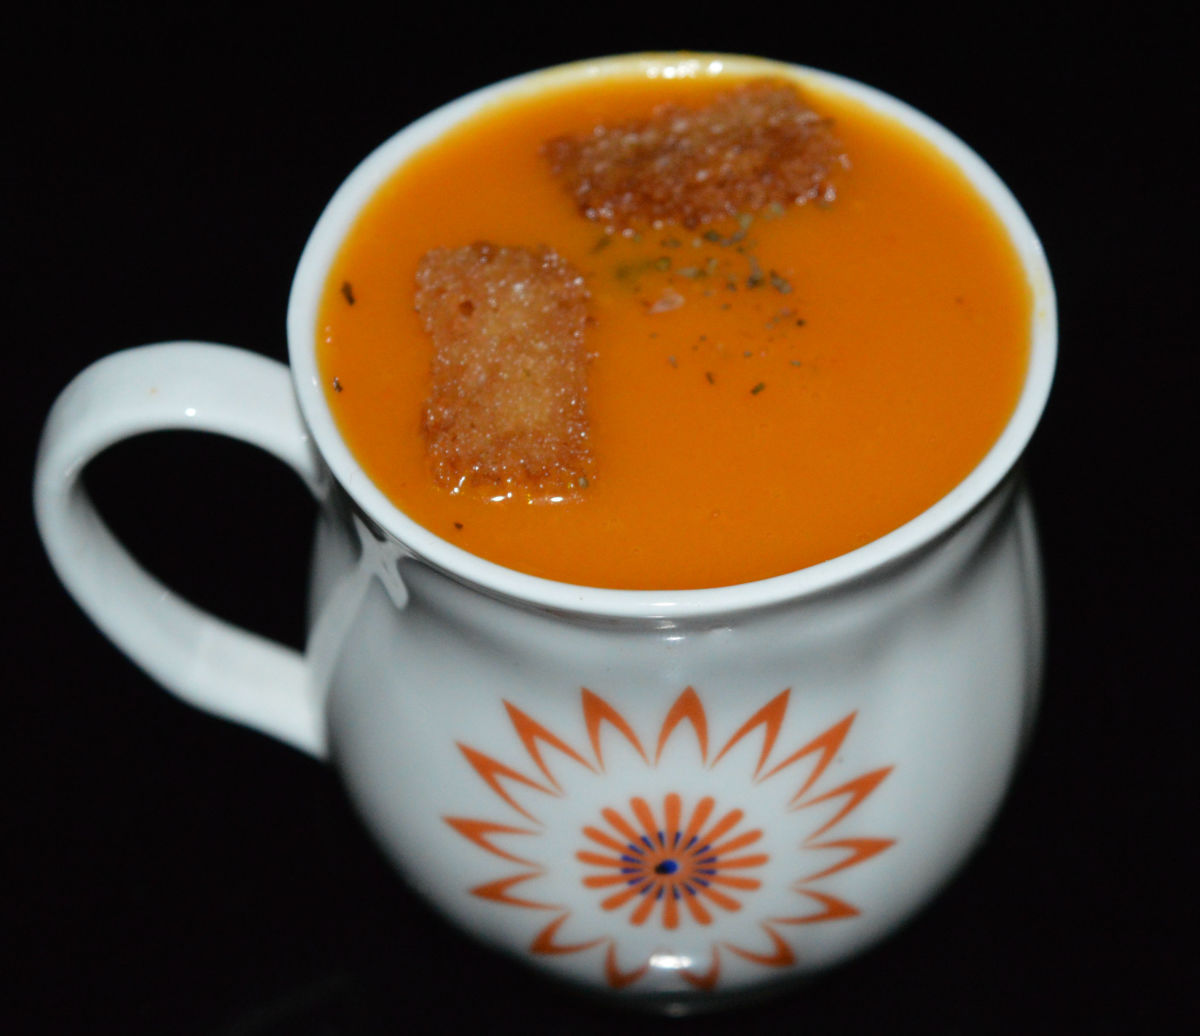 Mouthwatering carrot-onion soup is ready! Serve hot, garnished with toasted bread crumbs or dried herbs. Sip the heavenly puree!